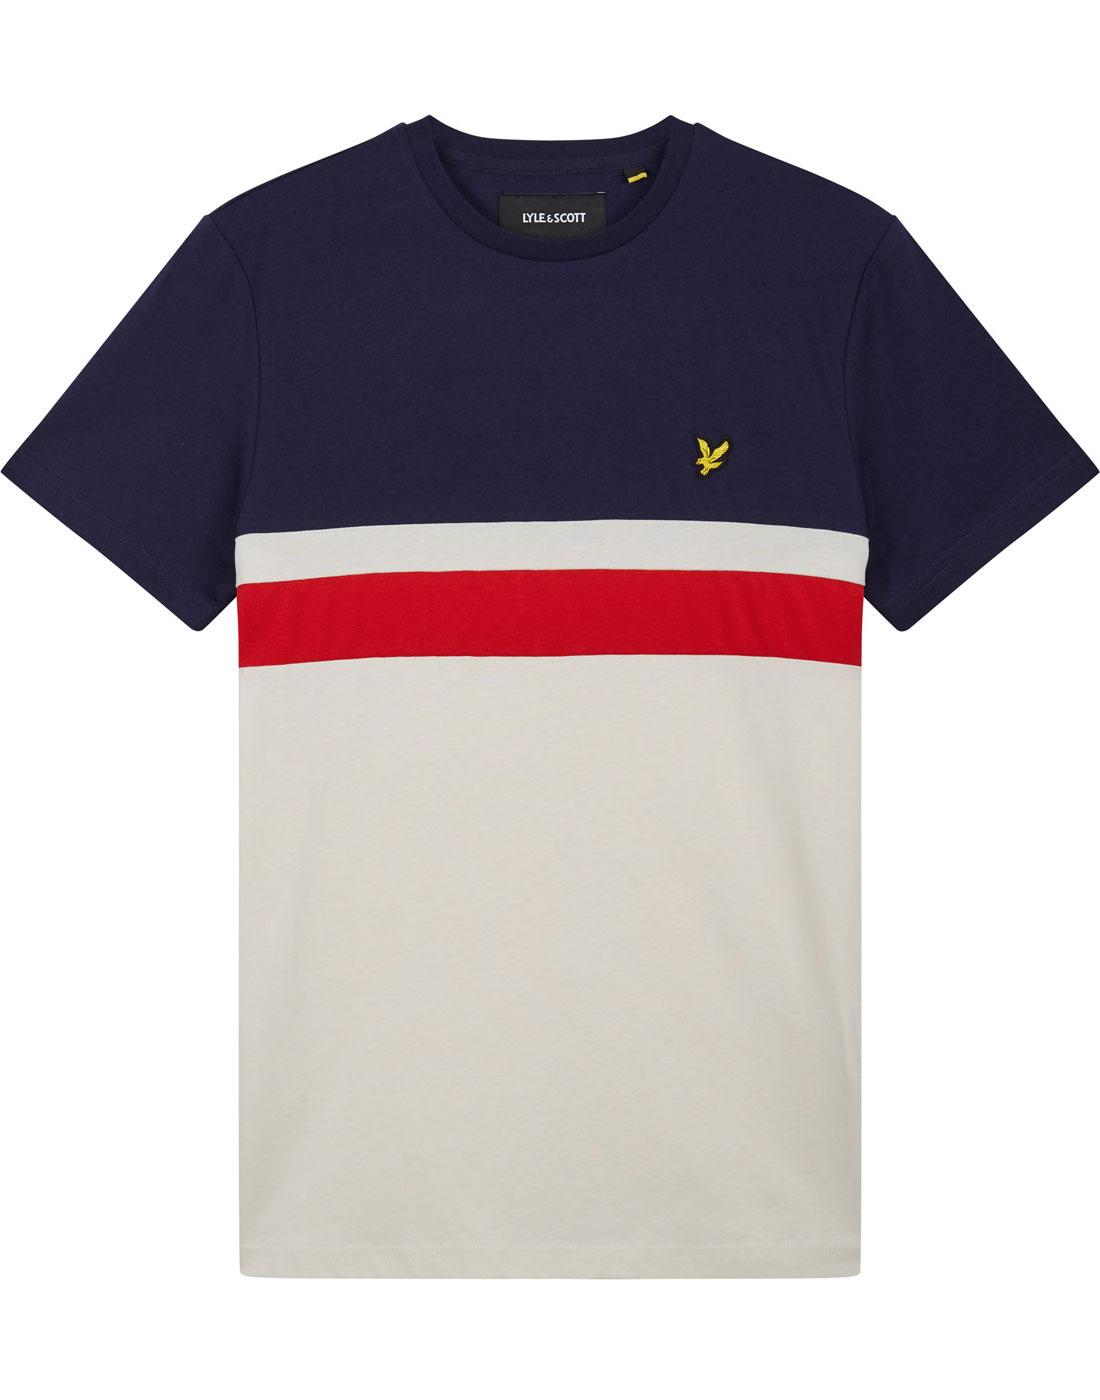 LYLE & SCOTT Retro Mod Yoke Stripe Panel Tee NAVY